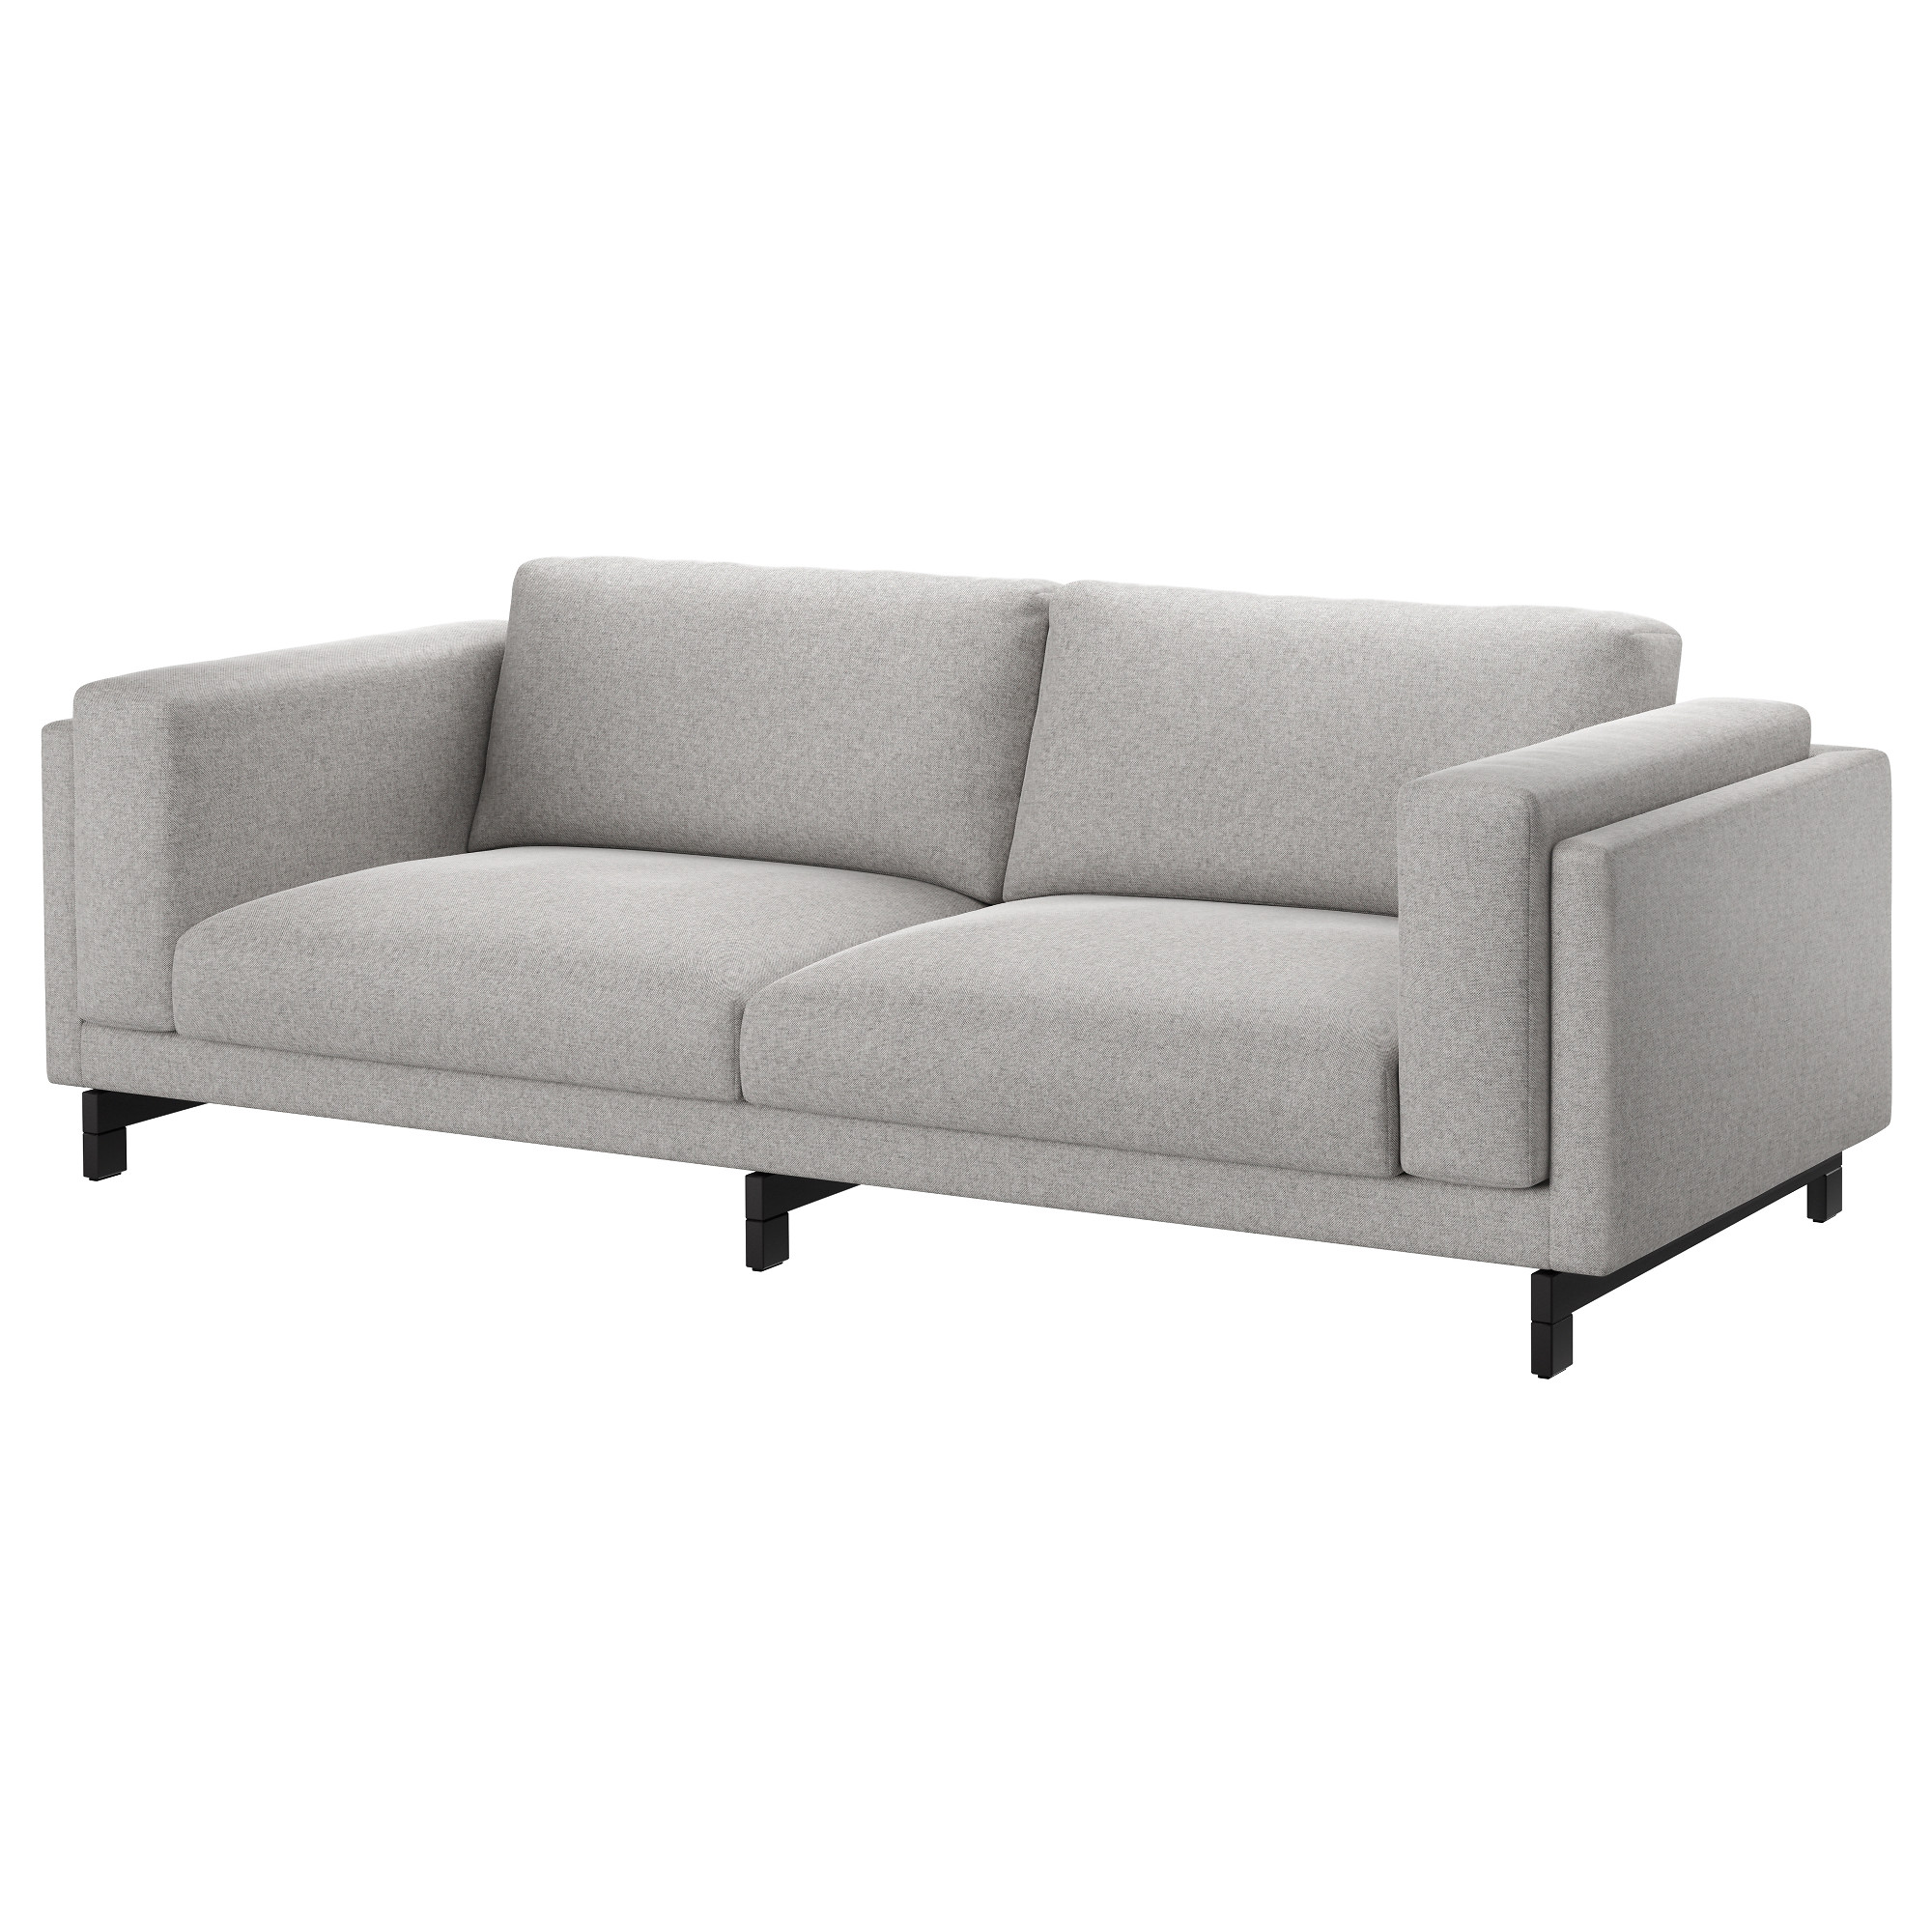 Genial NOCKEBY Sofa   Tallmyra White/black, Chrome Plated   IKEA